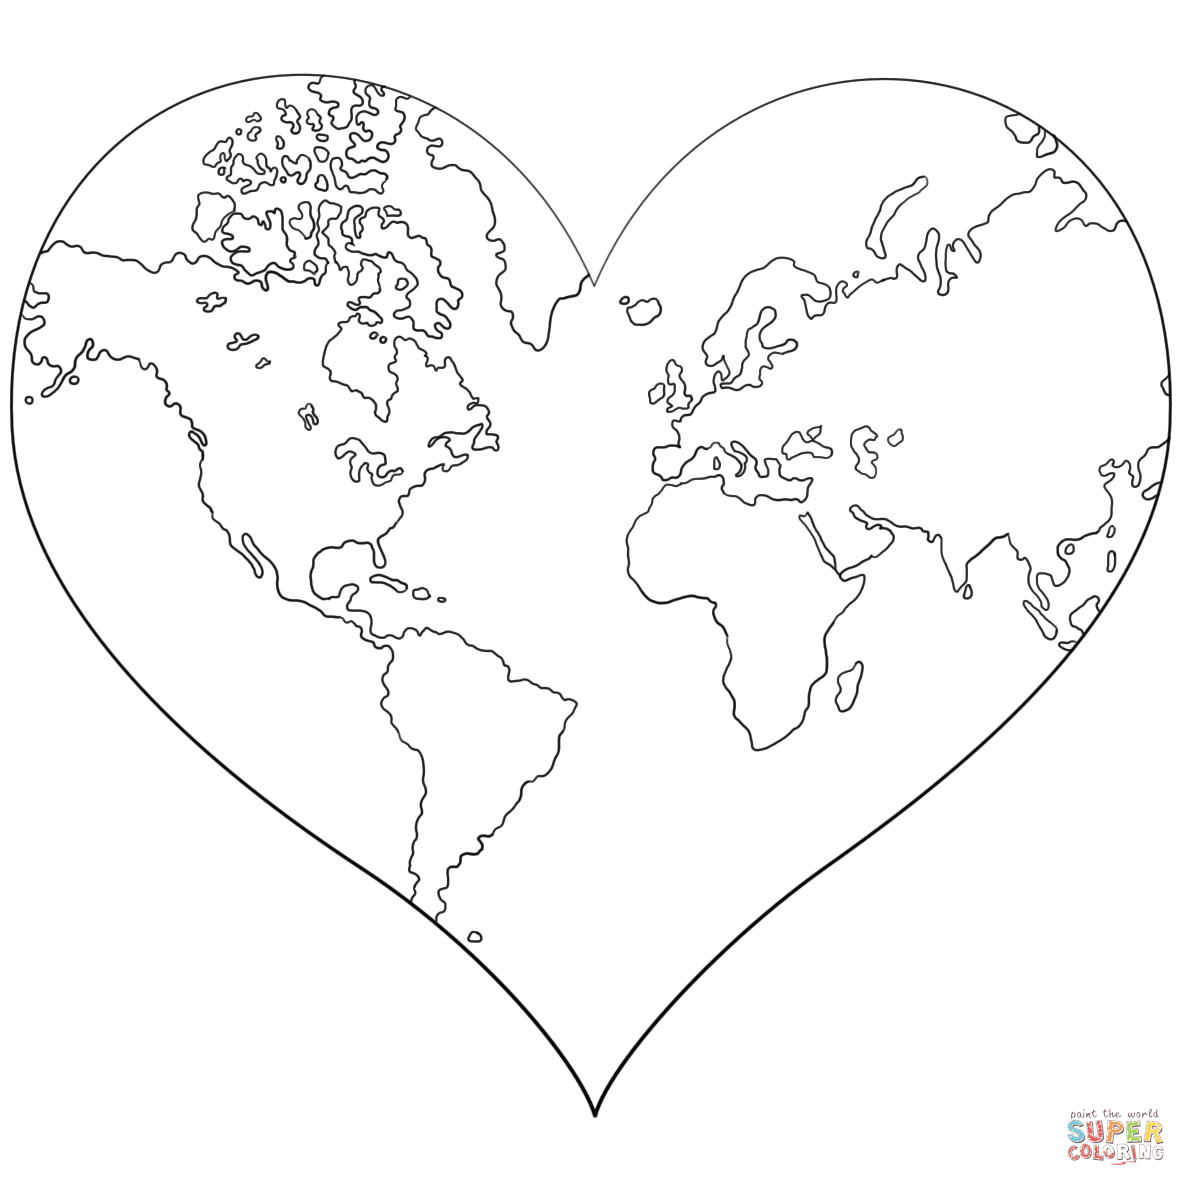 Heart Shaped Earth Coloring Page | Free Printable Coloring Pages - Earth Coloring Pages Free Printable